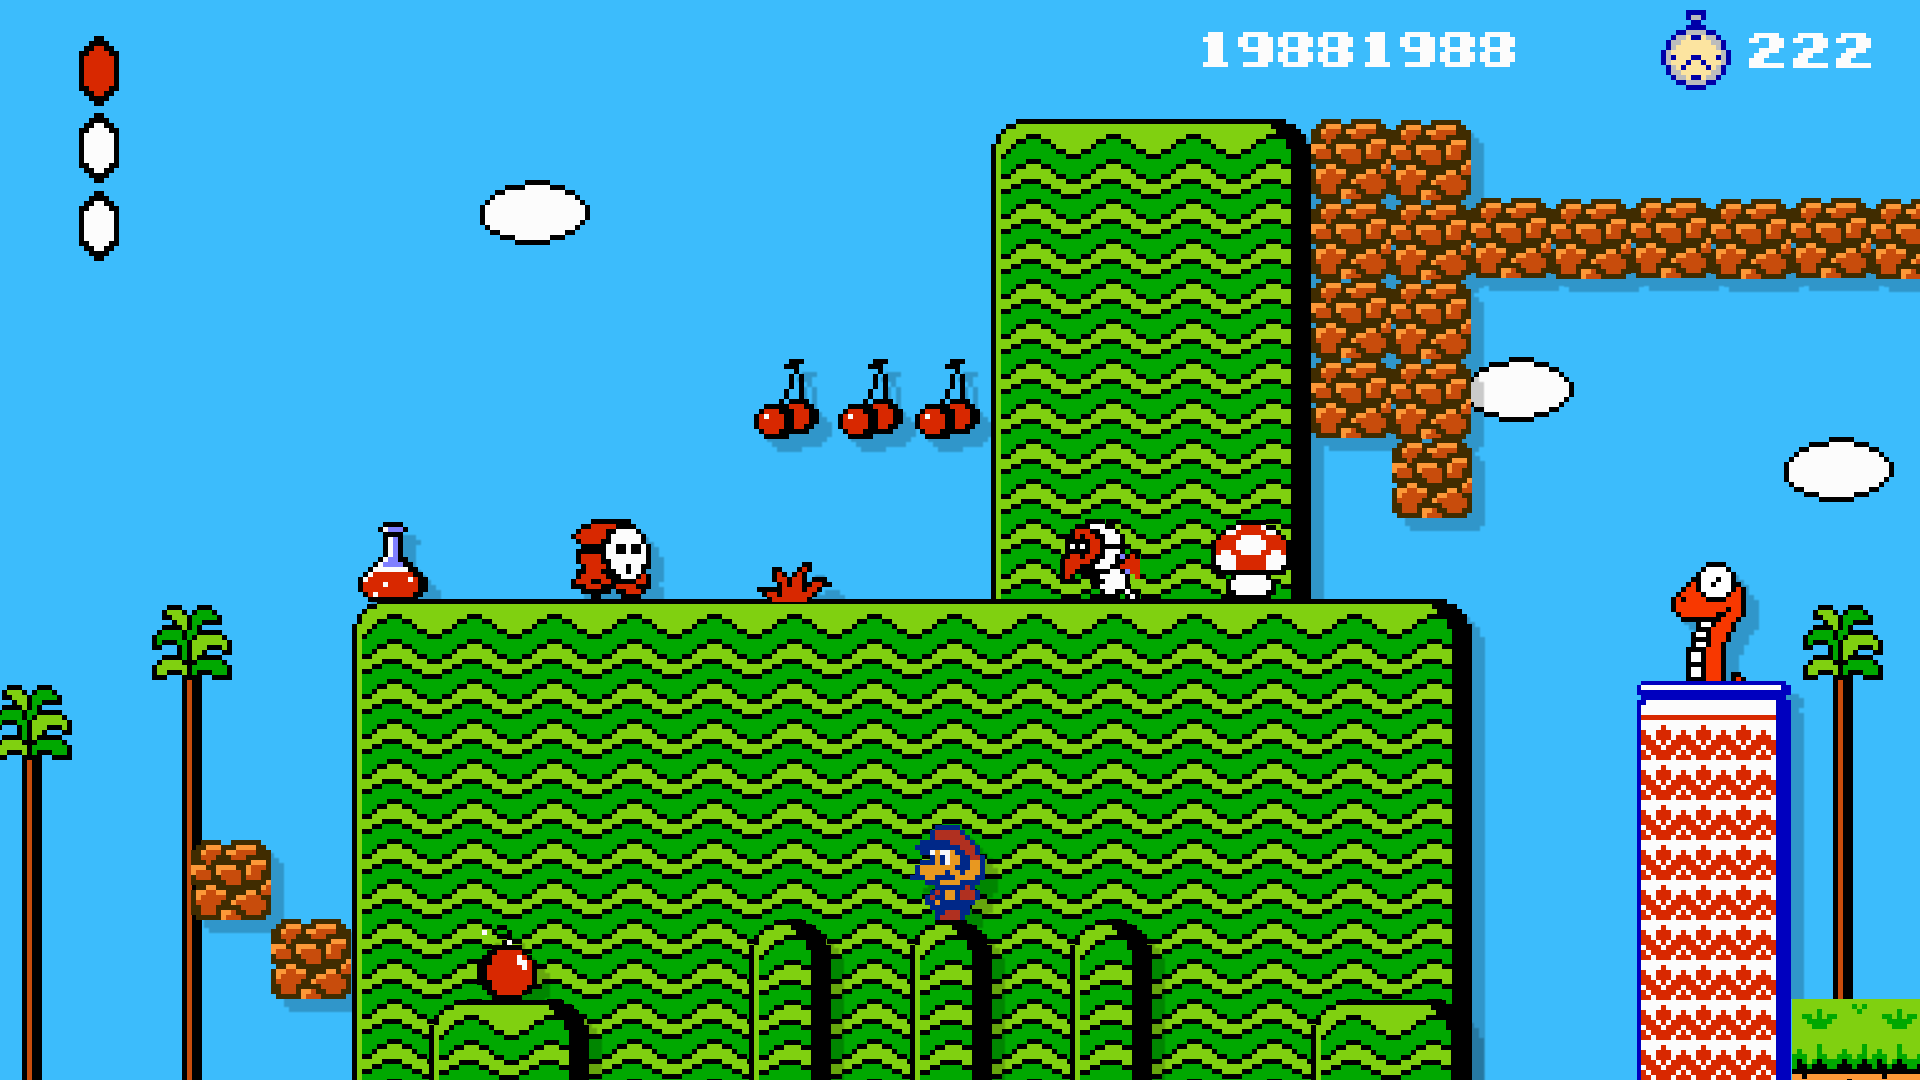 1920x1080 New video explains the origins of Super Mario Bros 2 | Den of Geek